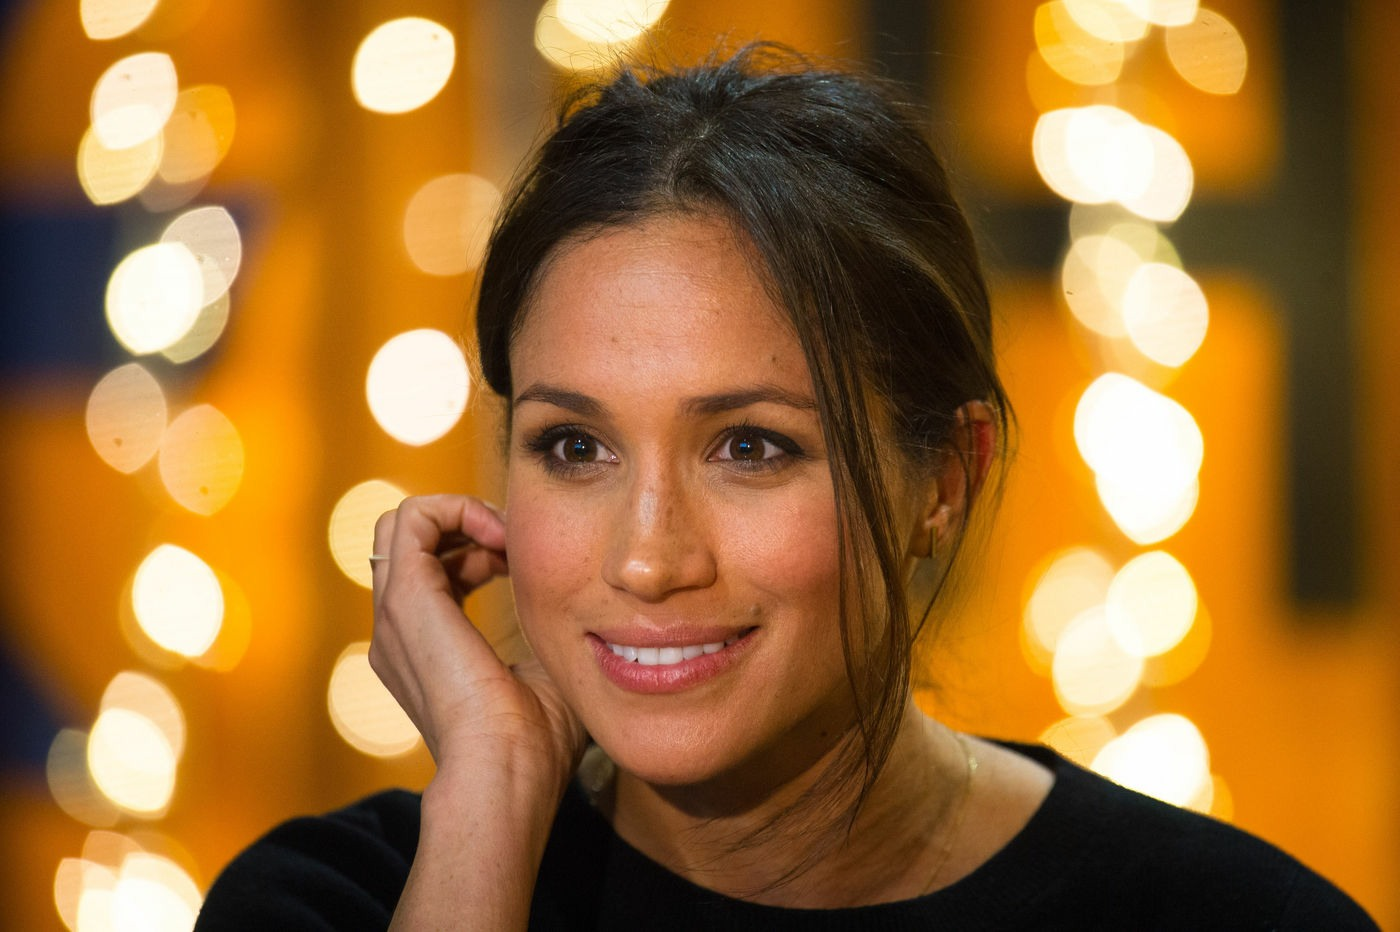 Meghan Markle during a visit to youth-orientated radio station, Reprezent FM, in Brixton, south London to learn about its work supporting young people